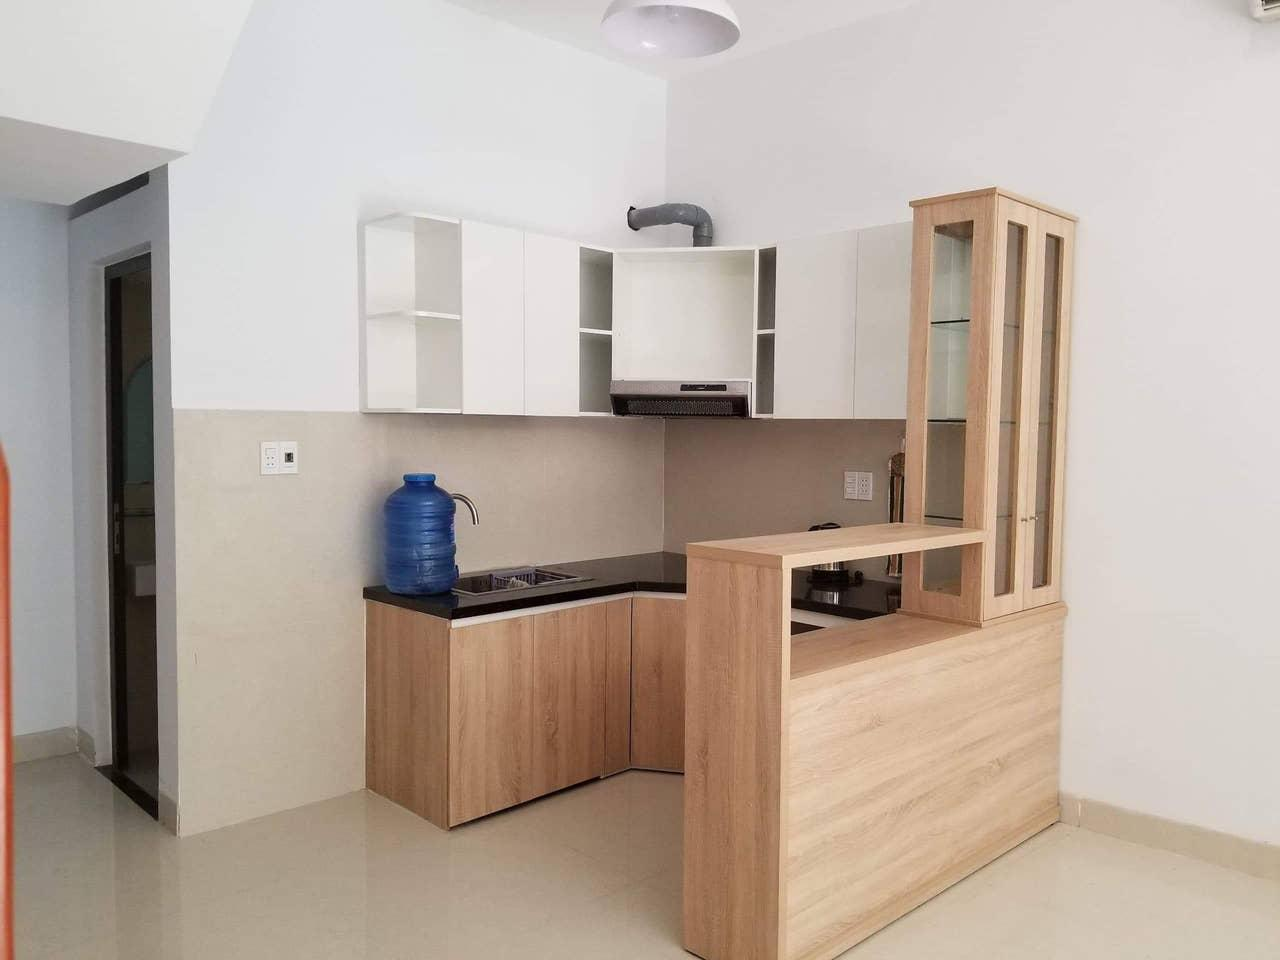 Apartment  CP Residences   6 Bedroom House 5 mins fm My Khe photo 18317811